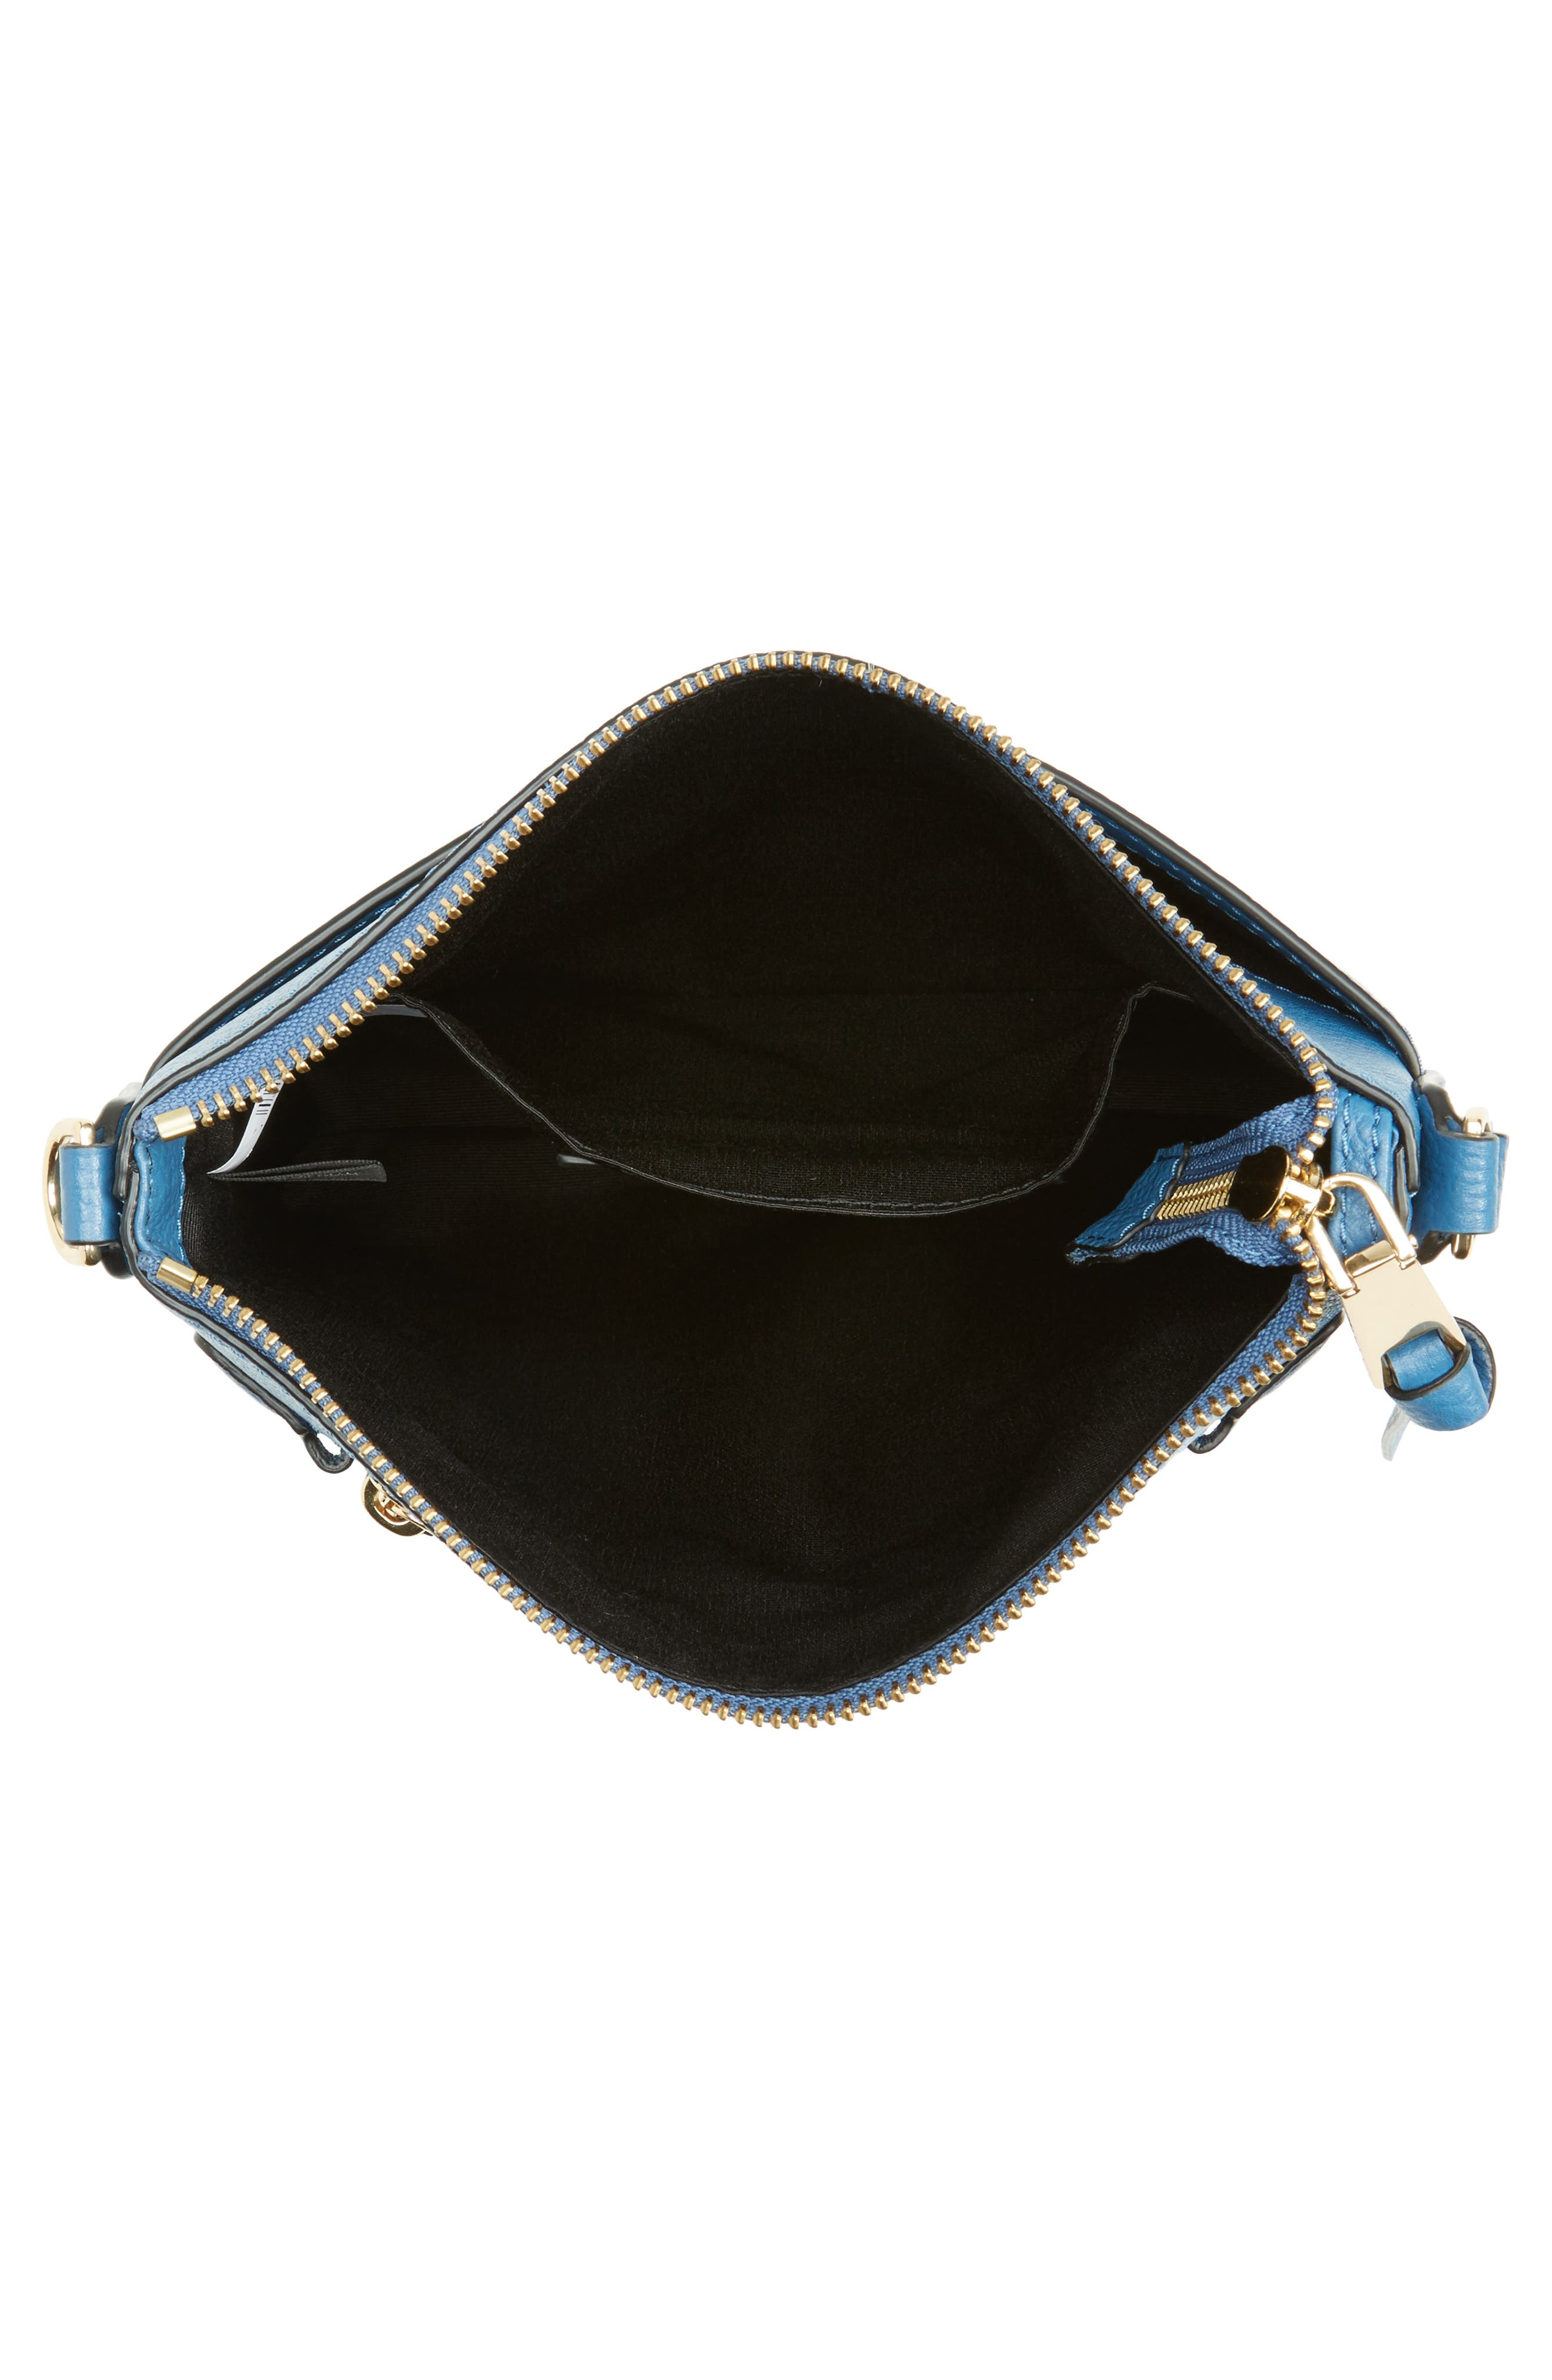 Recruit North/South Leather Crossbody Bag,                             Alternate thumbnail 4, color,                             476